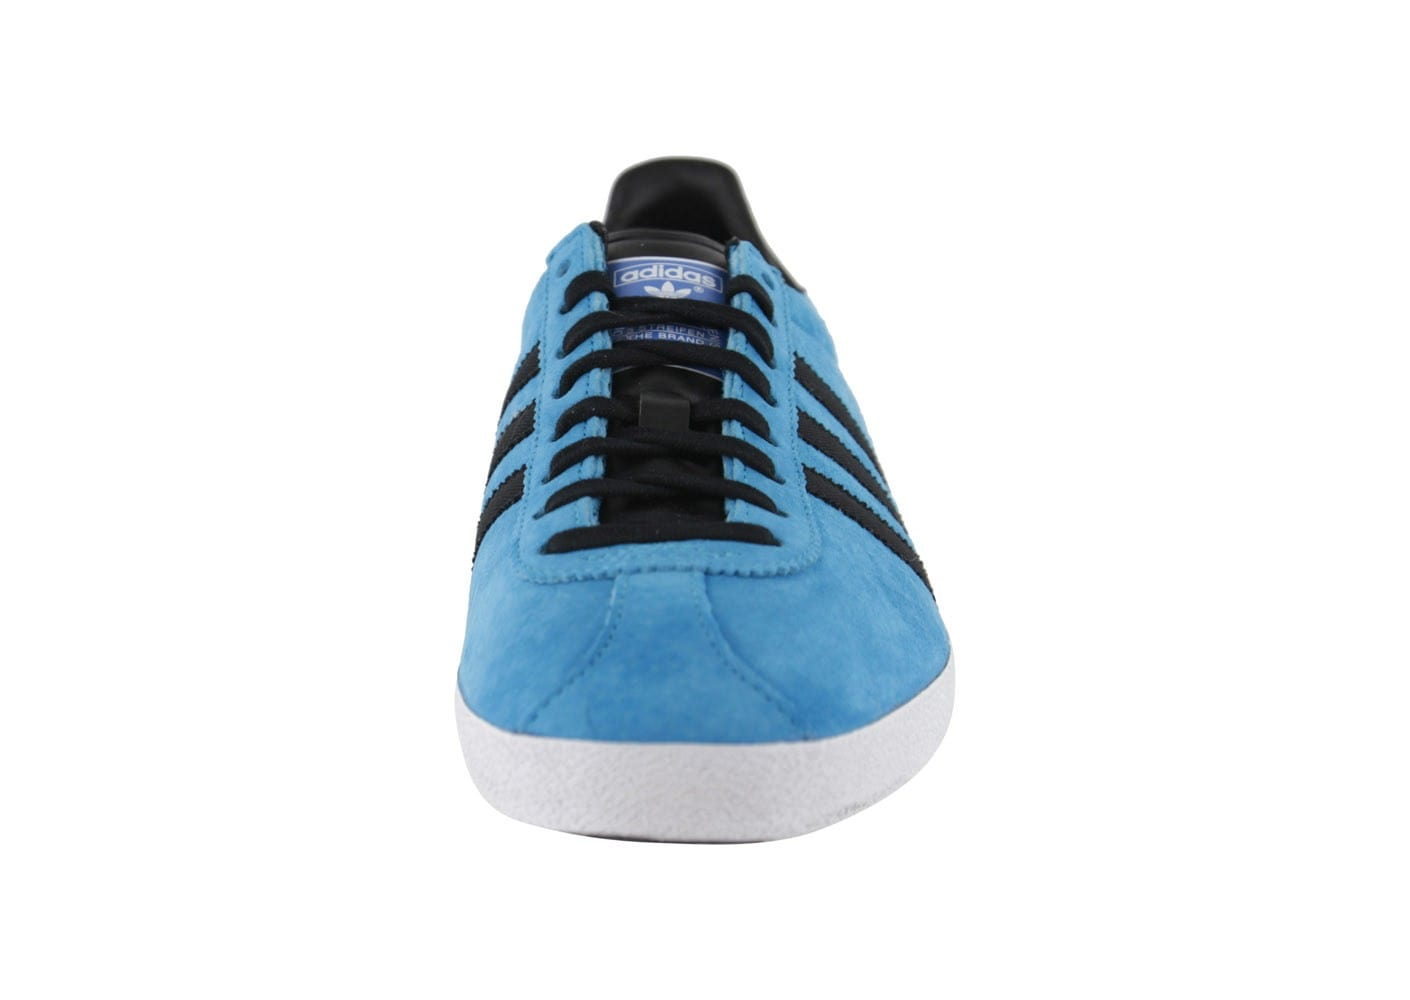 adidas gazelle og bleue chaussures adidas chausport. Black Bedroom Furniture Sets. Home Design Ideas